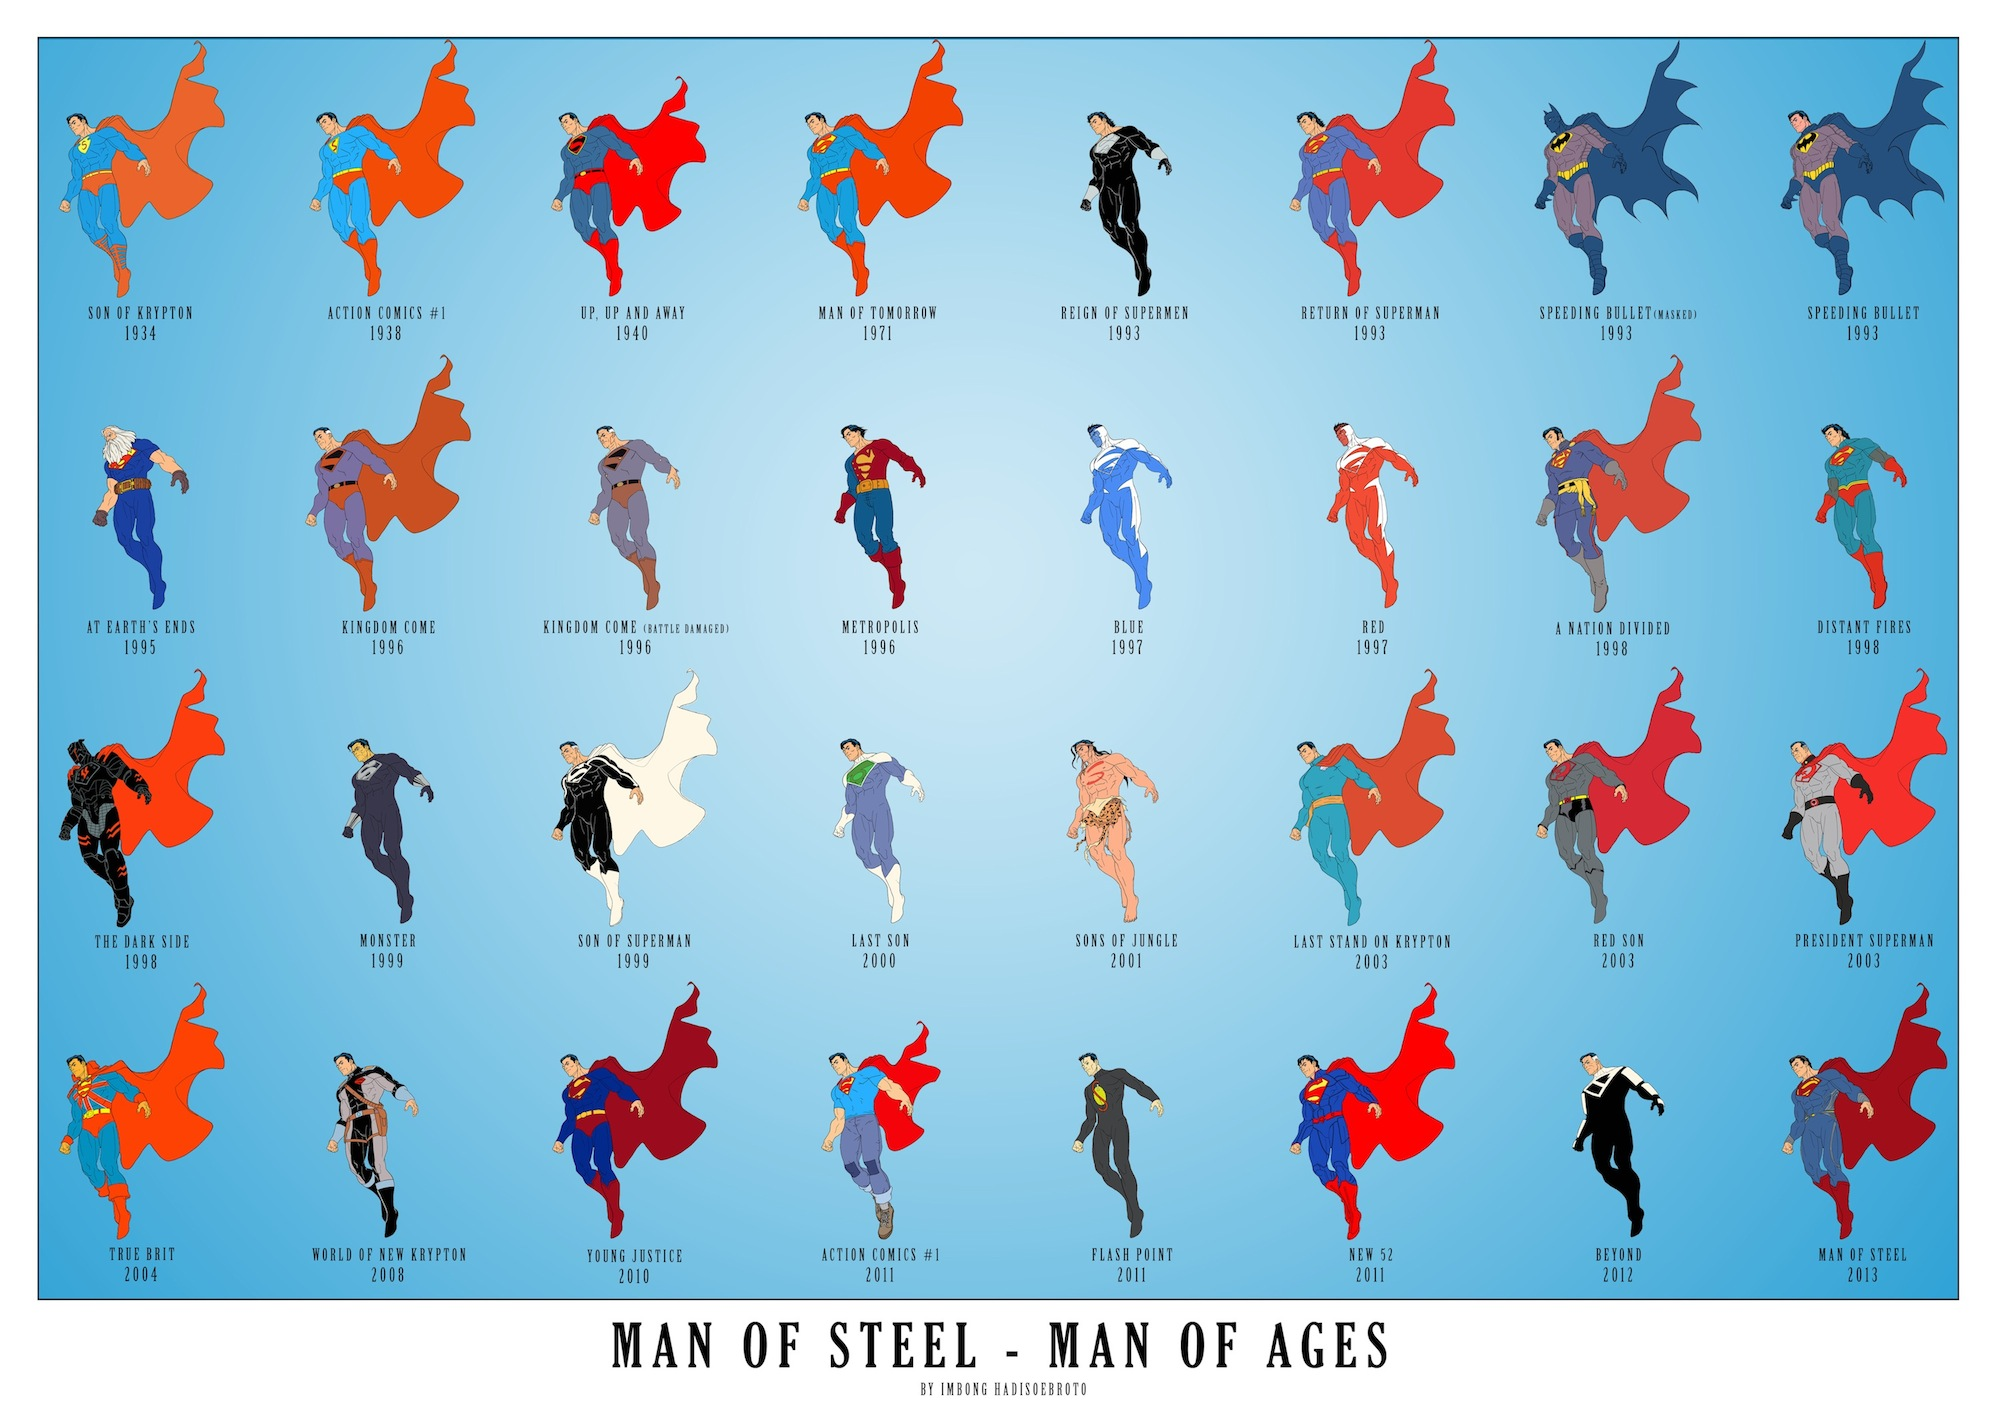 man_of_steel___man_of_ages